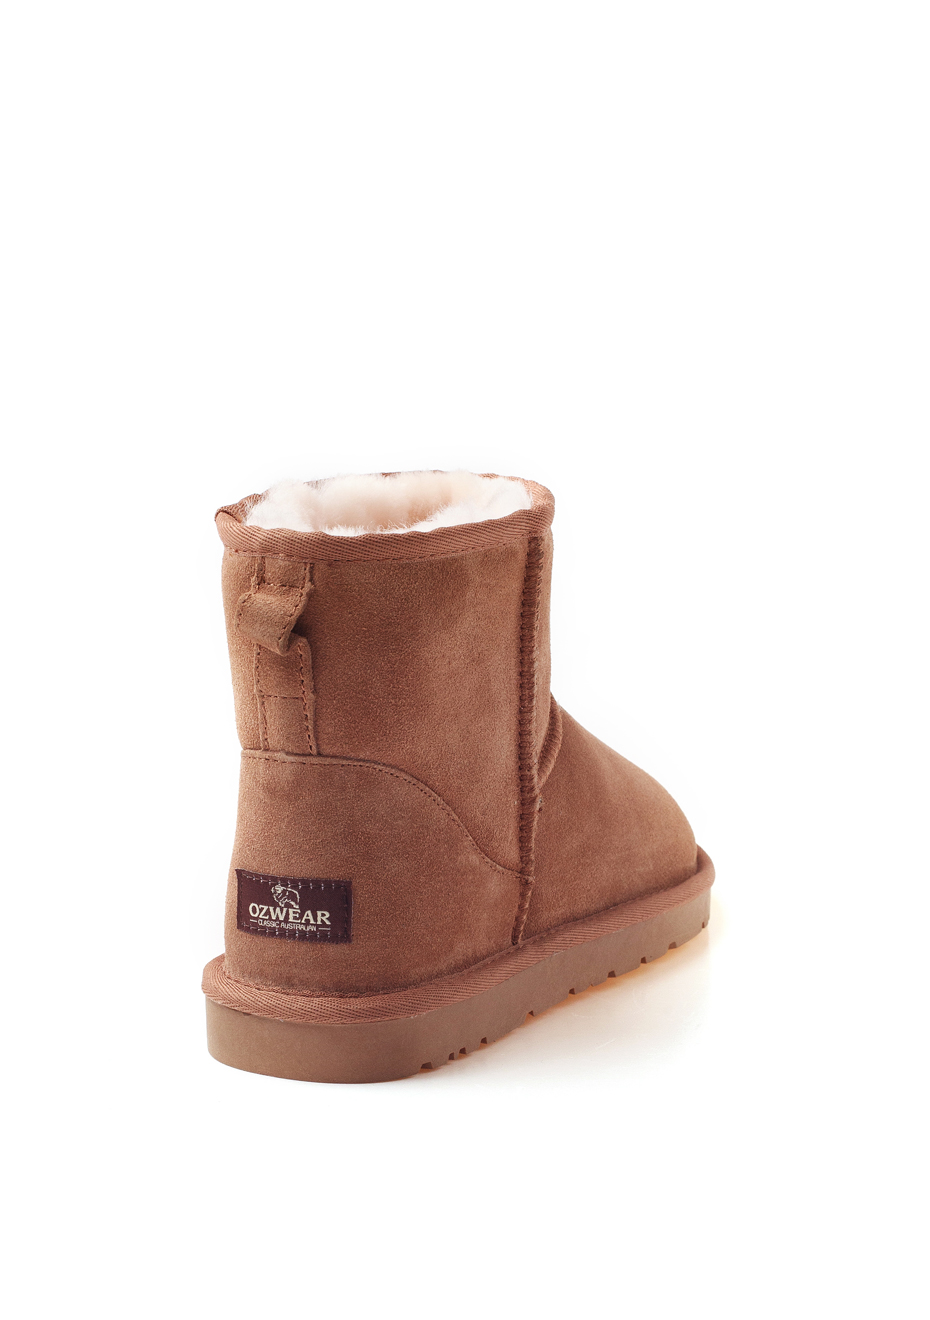 a8ecc17e0f5 reduced ugg boots classic mini rosa 300 2e0e4 4e5dc